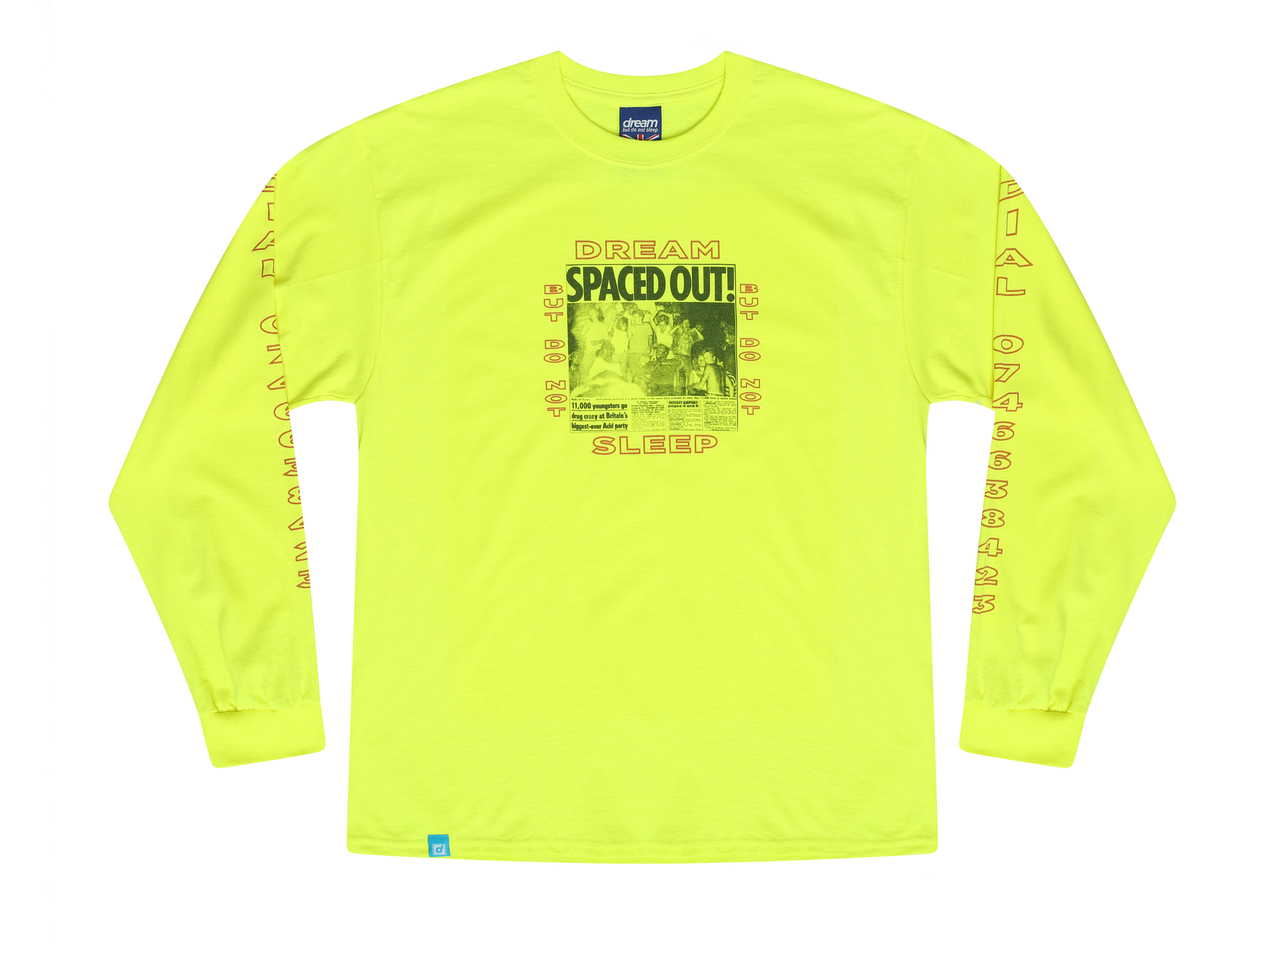 a29534e78 Safety Green Long Sleeved T-shirt With Spaced Out! Design - Dream ...